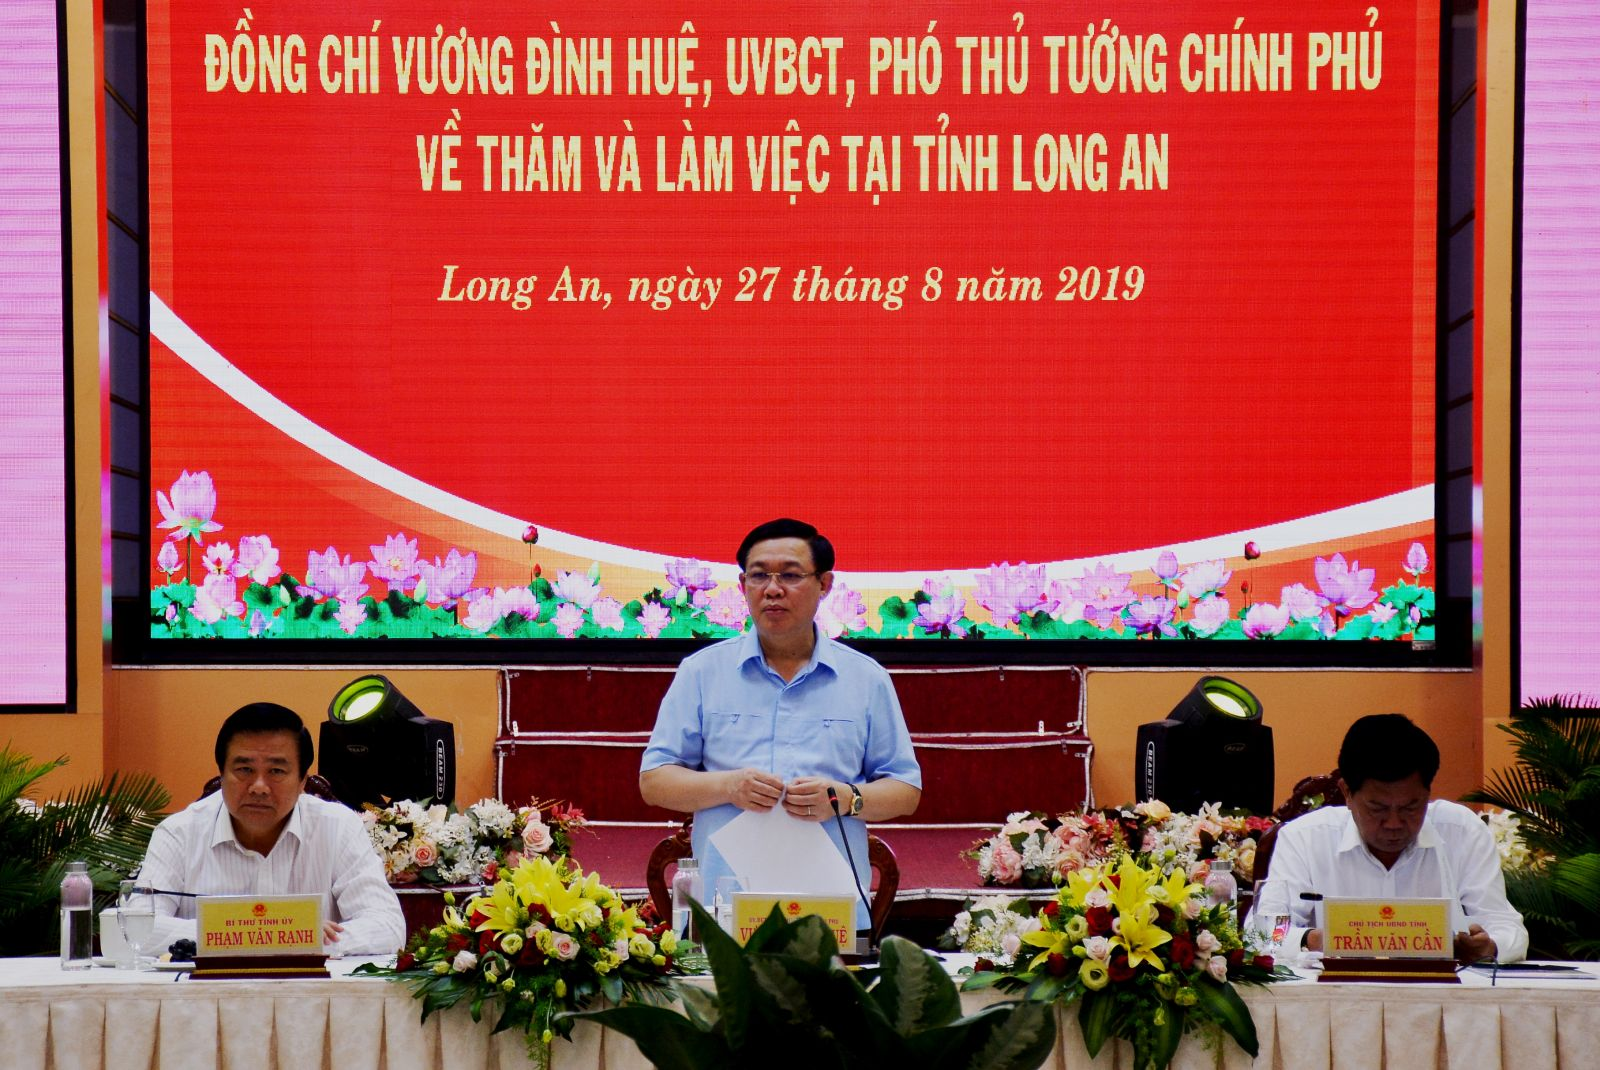 Deputy PM - Vuong Dinh Hue works with the leader of Long An province